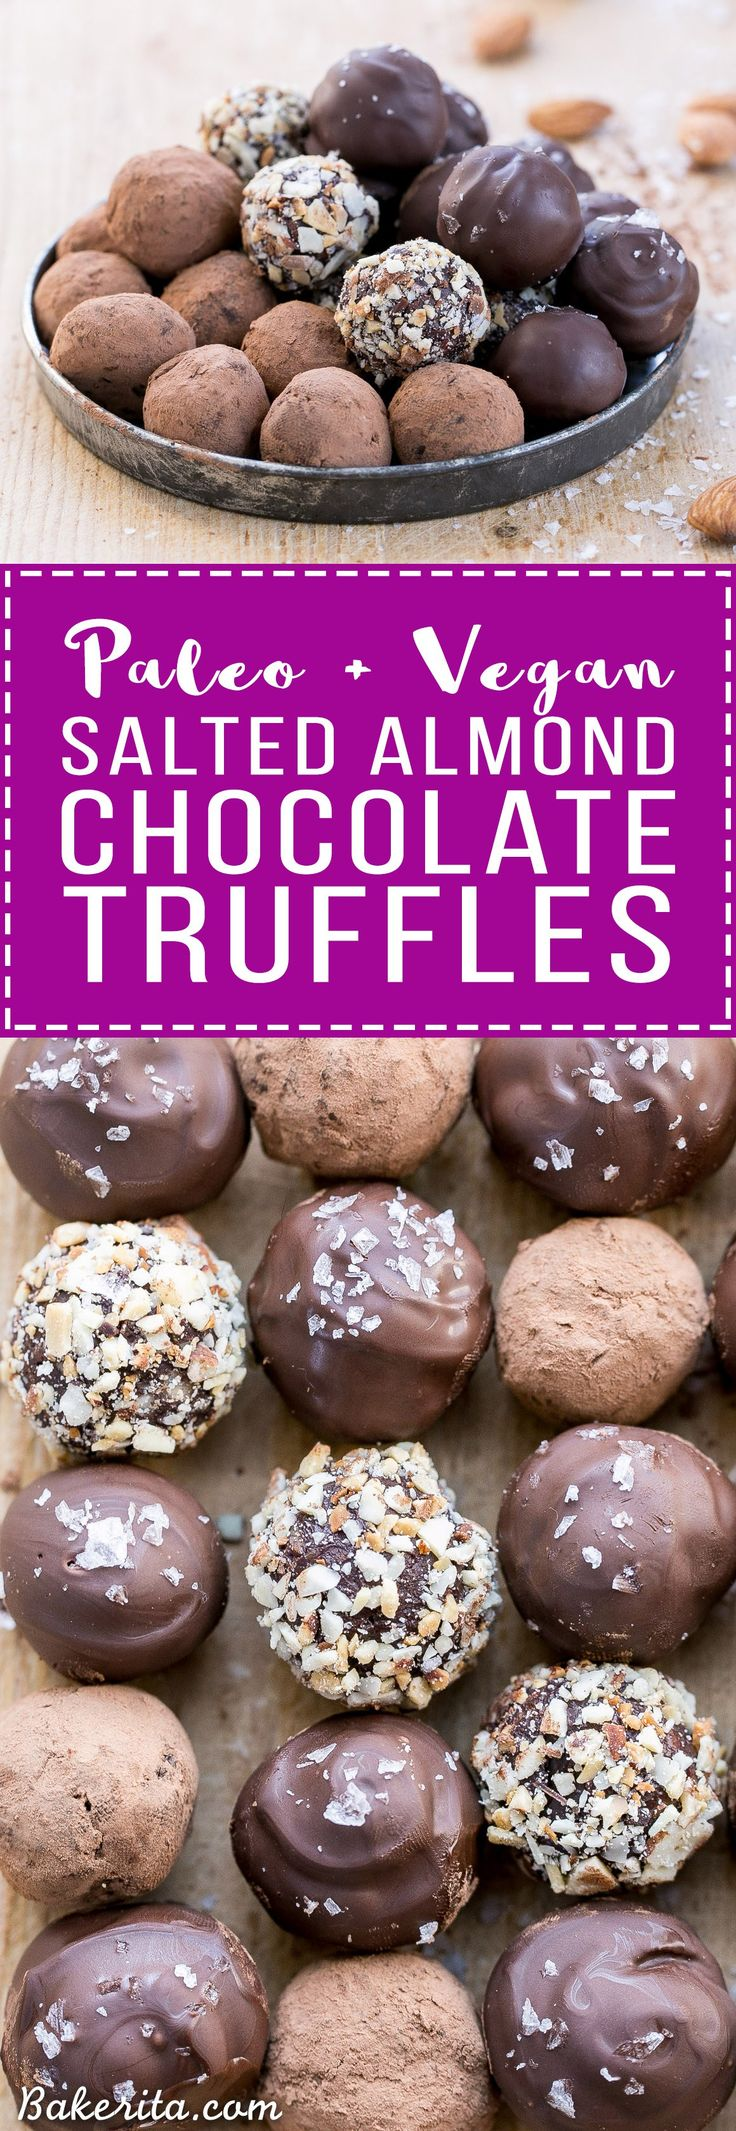 With toasted almonds for crunch and a sprinkle of sea salt on top, these Salted Almond Chocolate Truffles are a chocolate lover's dream! They're easy to make, Paleo-friendly, and vegan. A batch of these truffles makes the perfect holiday gift.